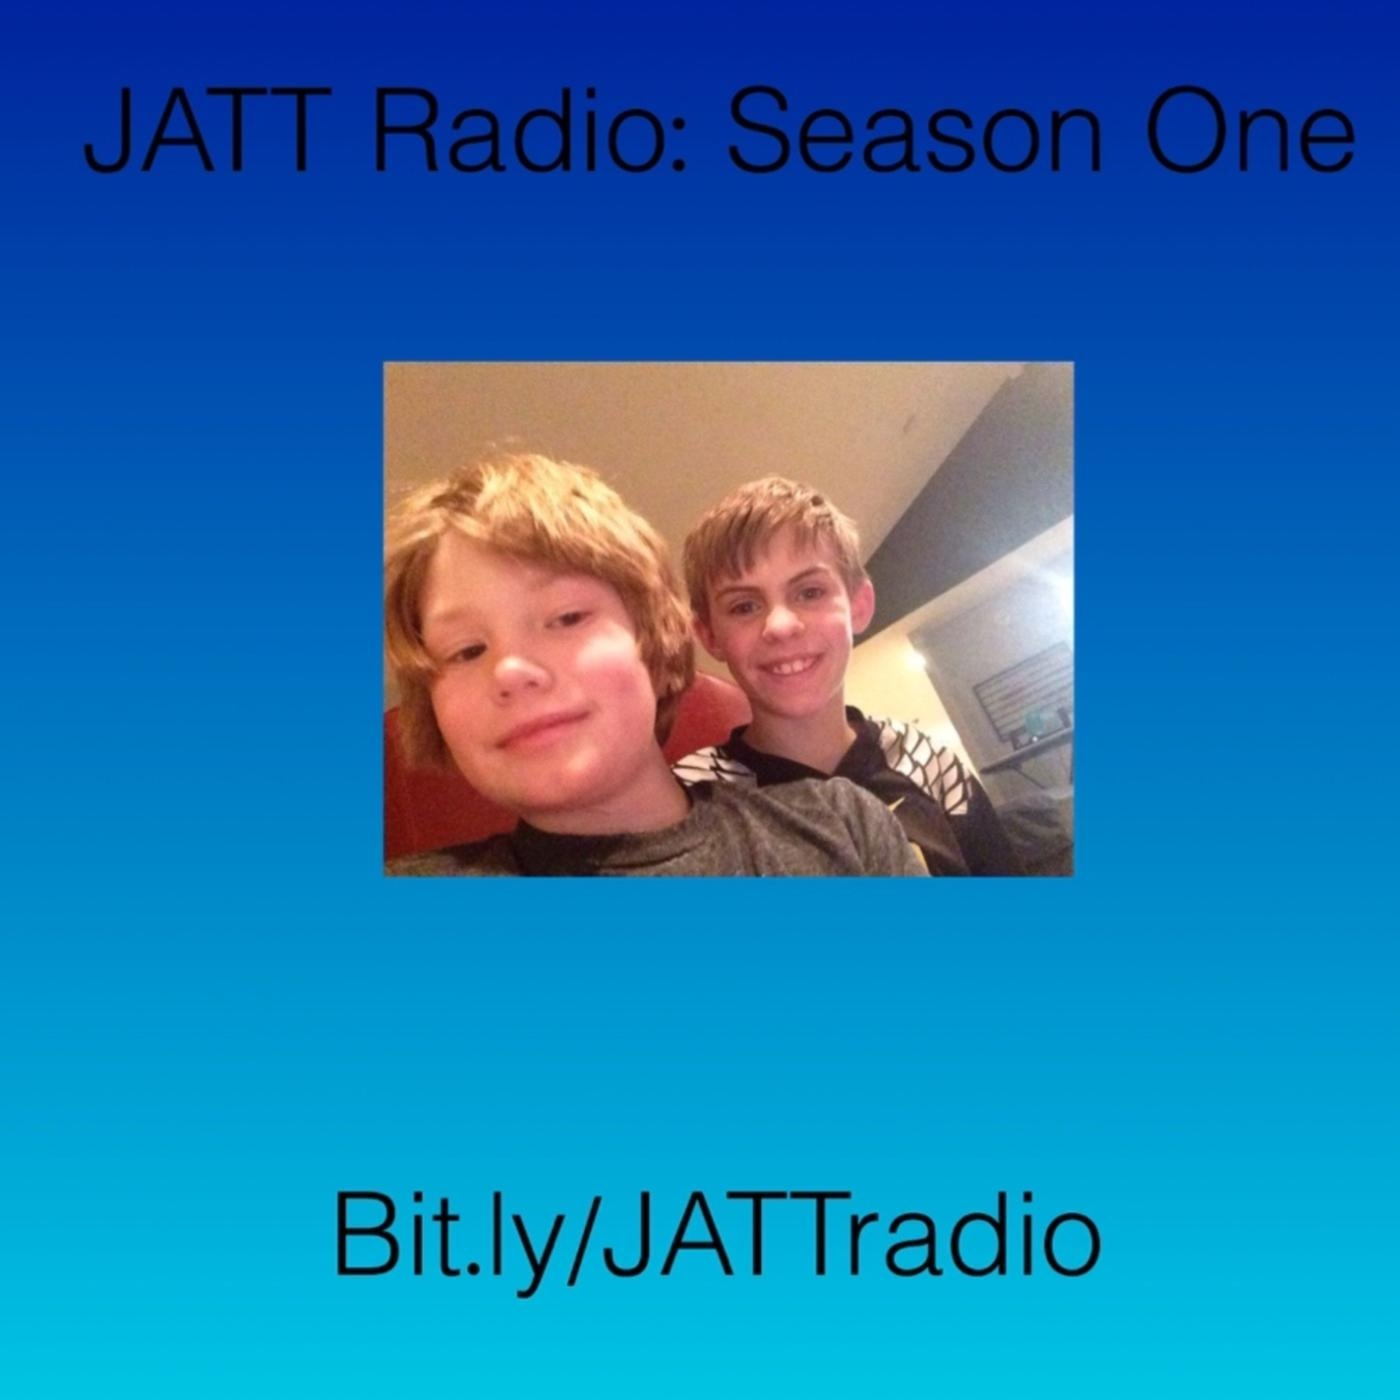 JATT Radio: Season One